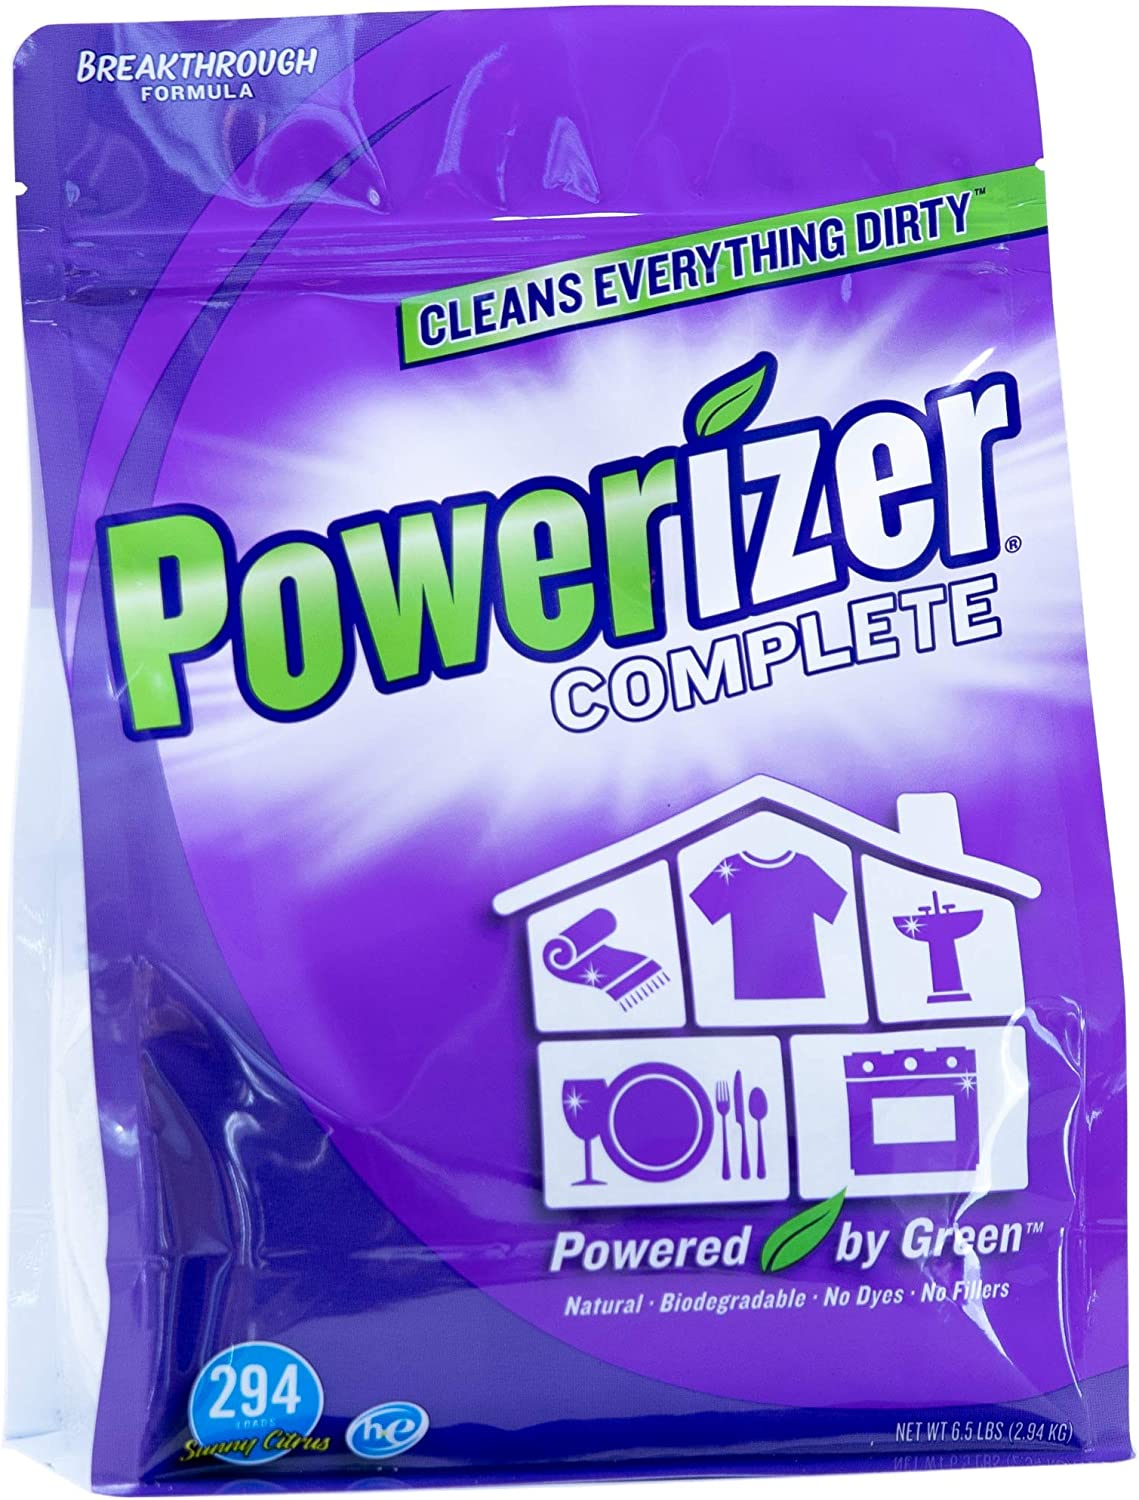 Powerizer Complete All-in-One Laundry Detergent, Dish Detergent, Bathroom Cleaner, Floor Cleaner, Carpet Stain & Spot Remover, Multi-Purpose Cleaner - Parent (6.5lb)